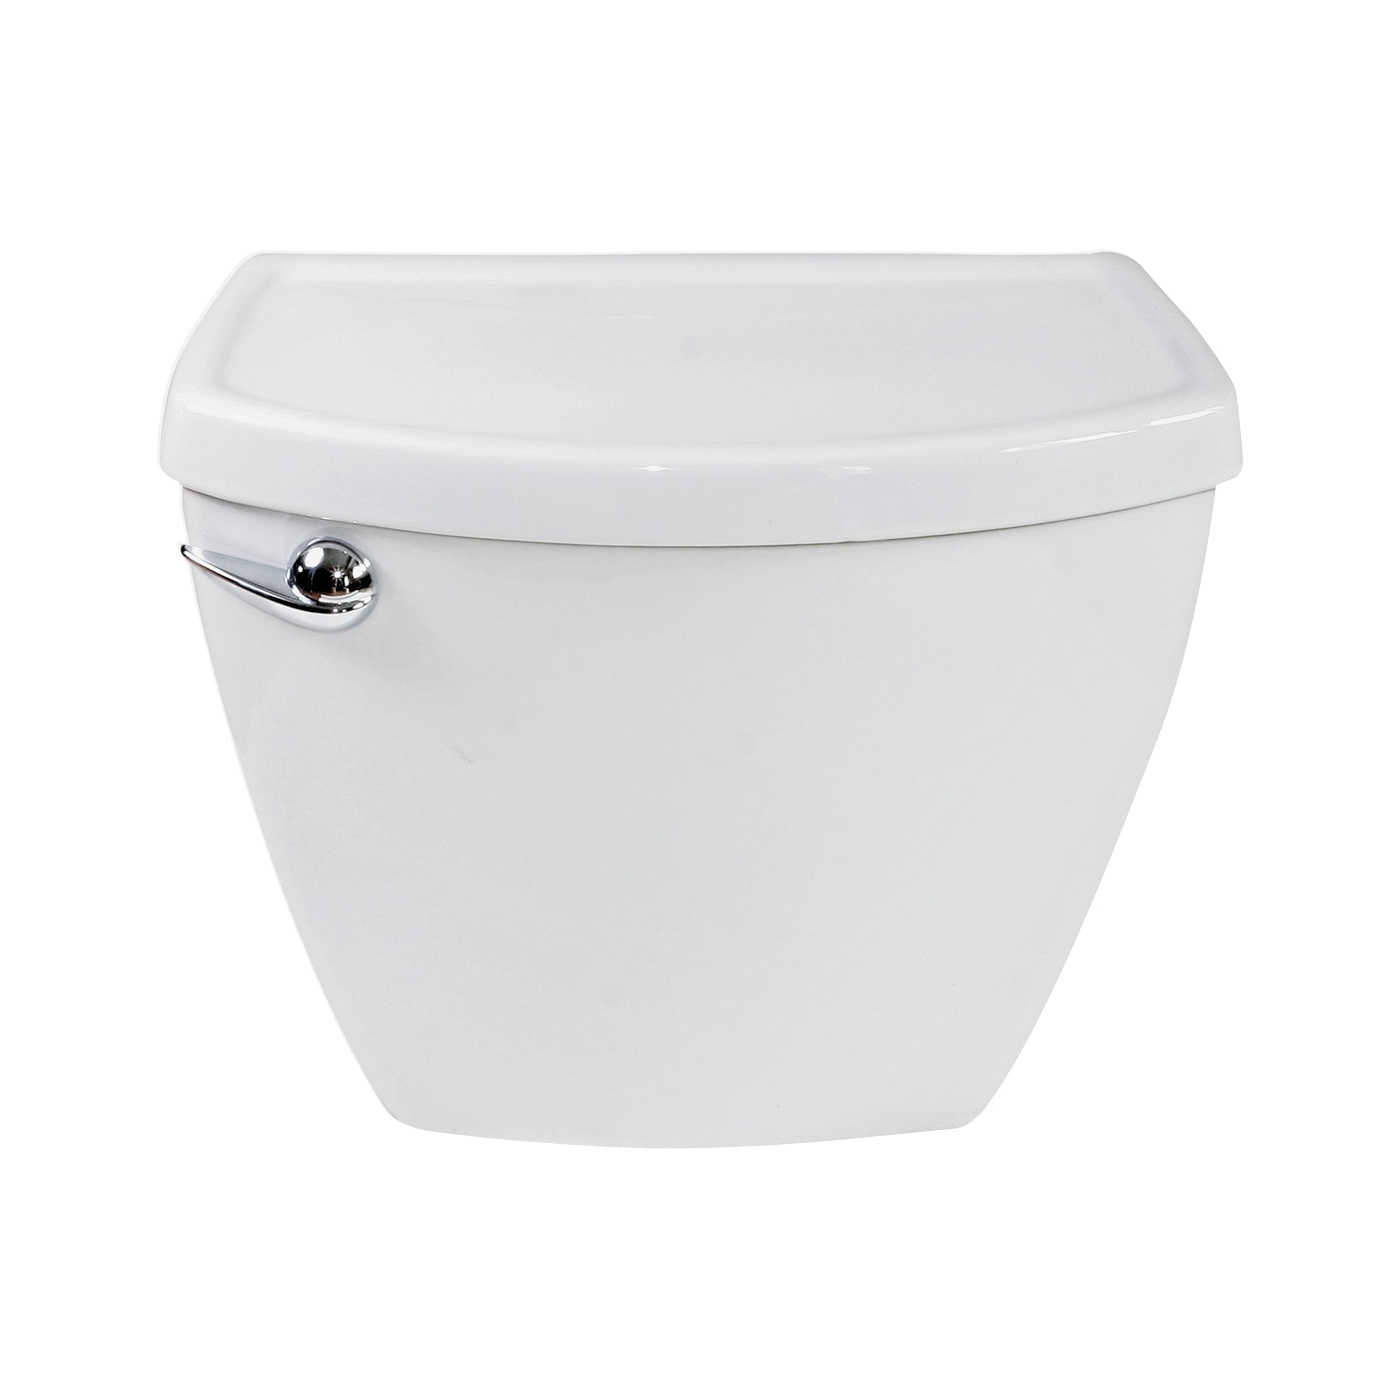 Picture of American Standard Cadet 3 Series 4021101N.020 Toilet Tank, 1.28 gpf Flush, 12 in Rough-In, Vitreous China, White